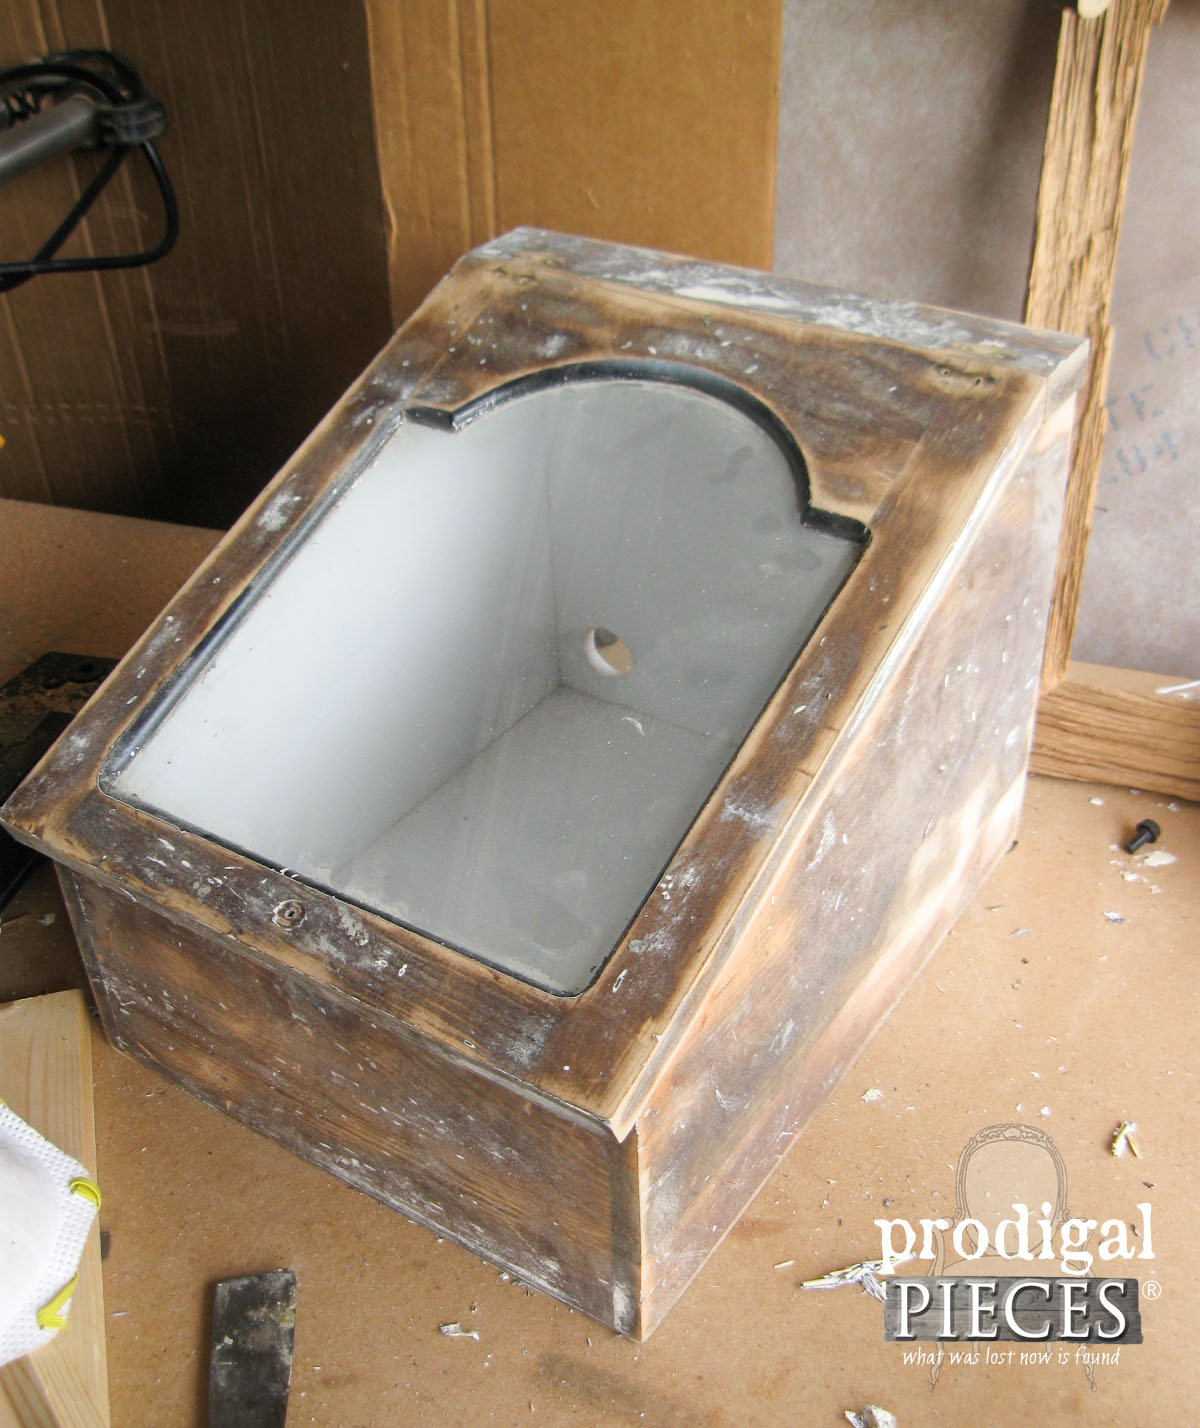 Vintage Bread Box Sanded Down for New Look | Prodigal Pieces | www.prodigalpieces.com